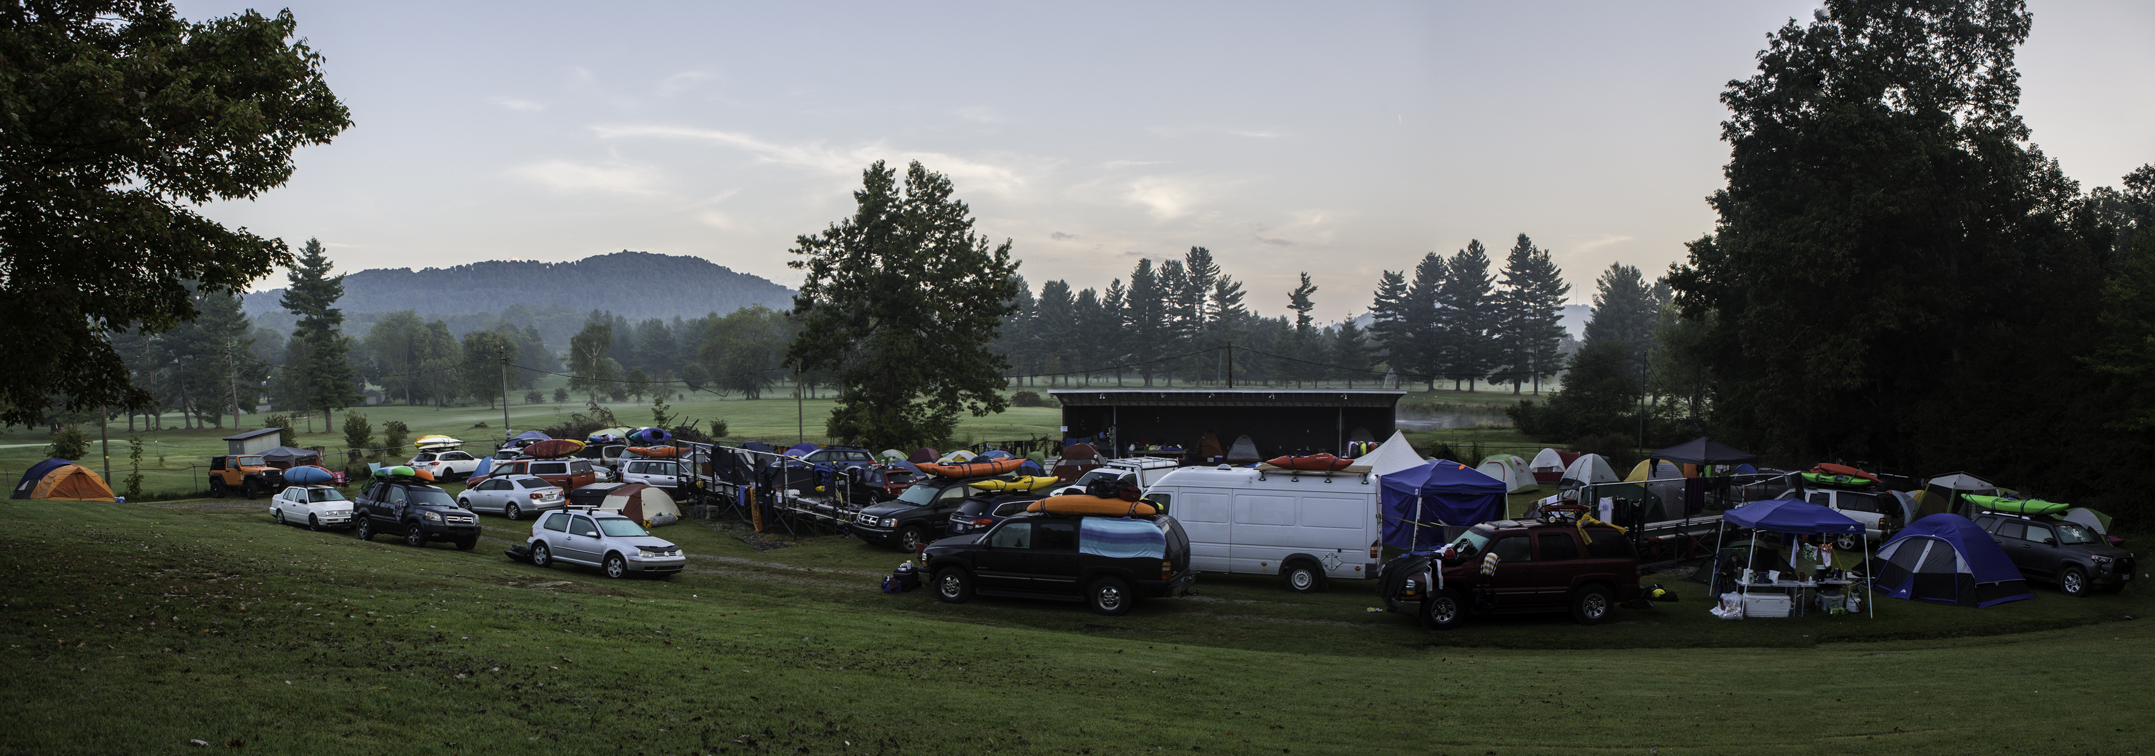 early morning at our little slice of heaven, wv. this was just our small corner of the grounds, there were at least 2000 more campers scattered behind the lens